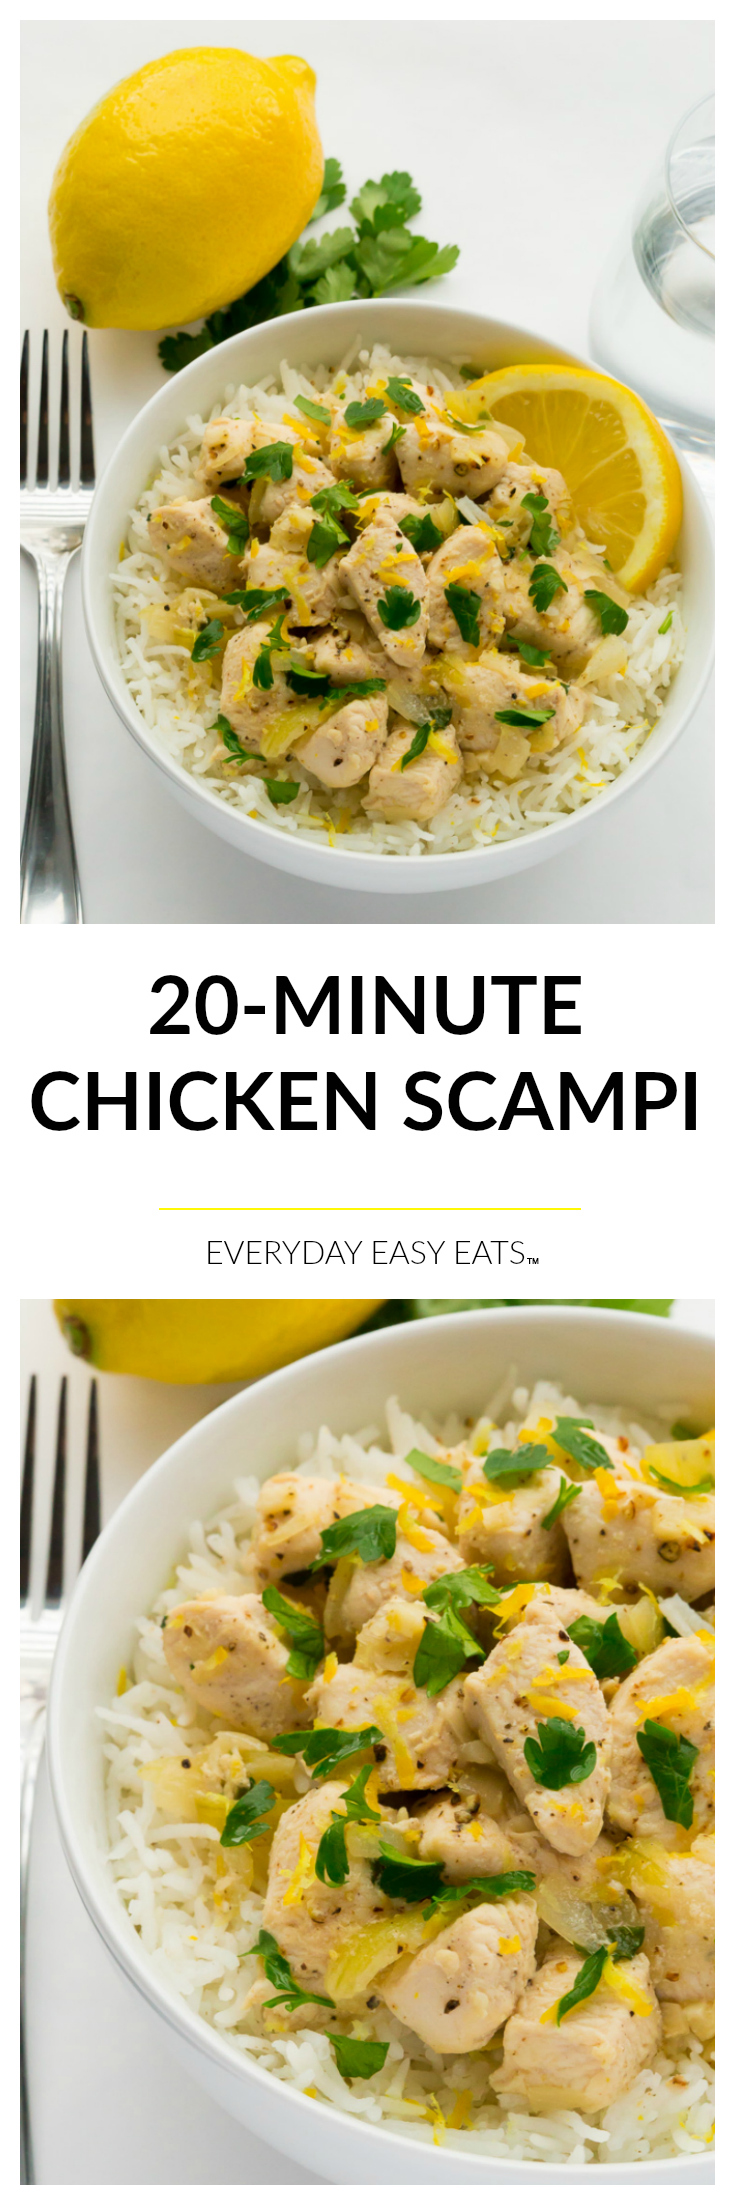 20-Minute Chicken Scampi - Perfect for busy weeknights! | Recipe at EverydayEasyEats.com